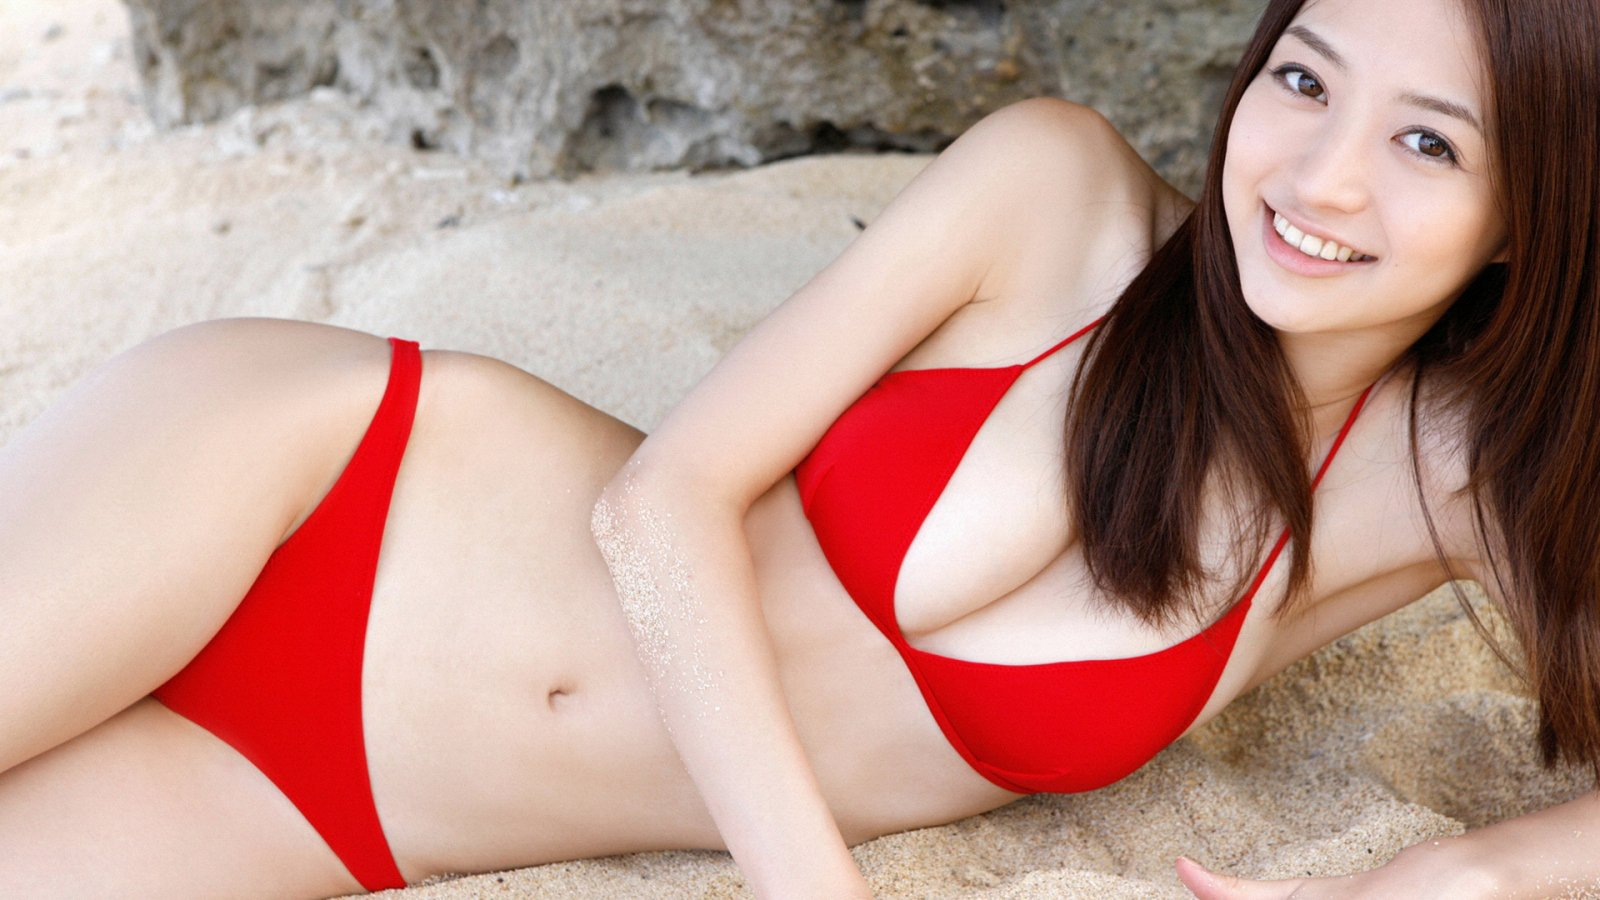 Chinese & Japanese Hot Girls HD Wallpapers